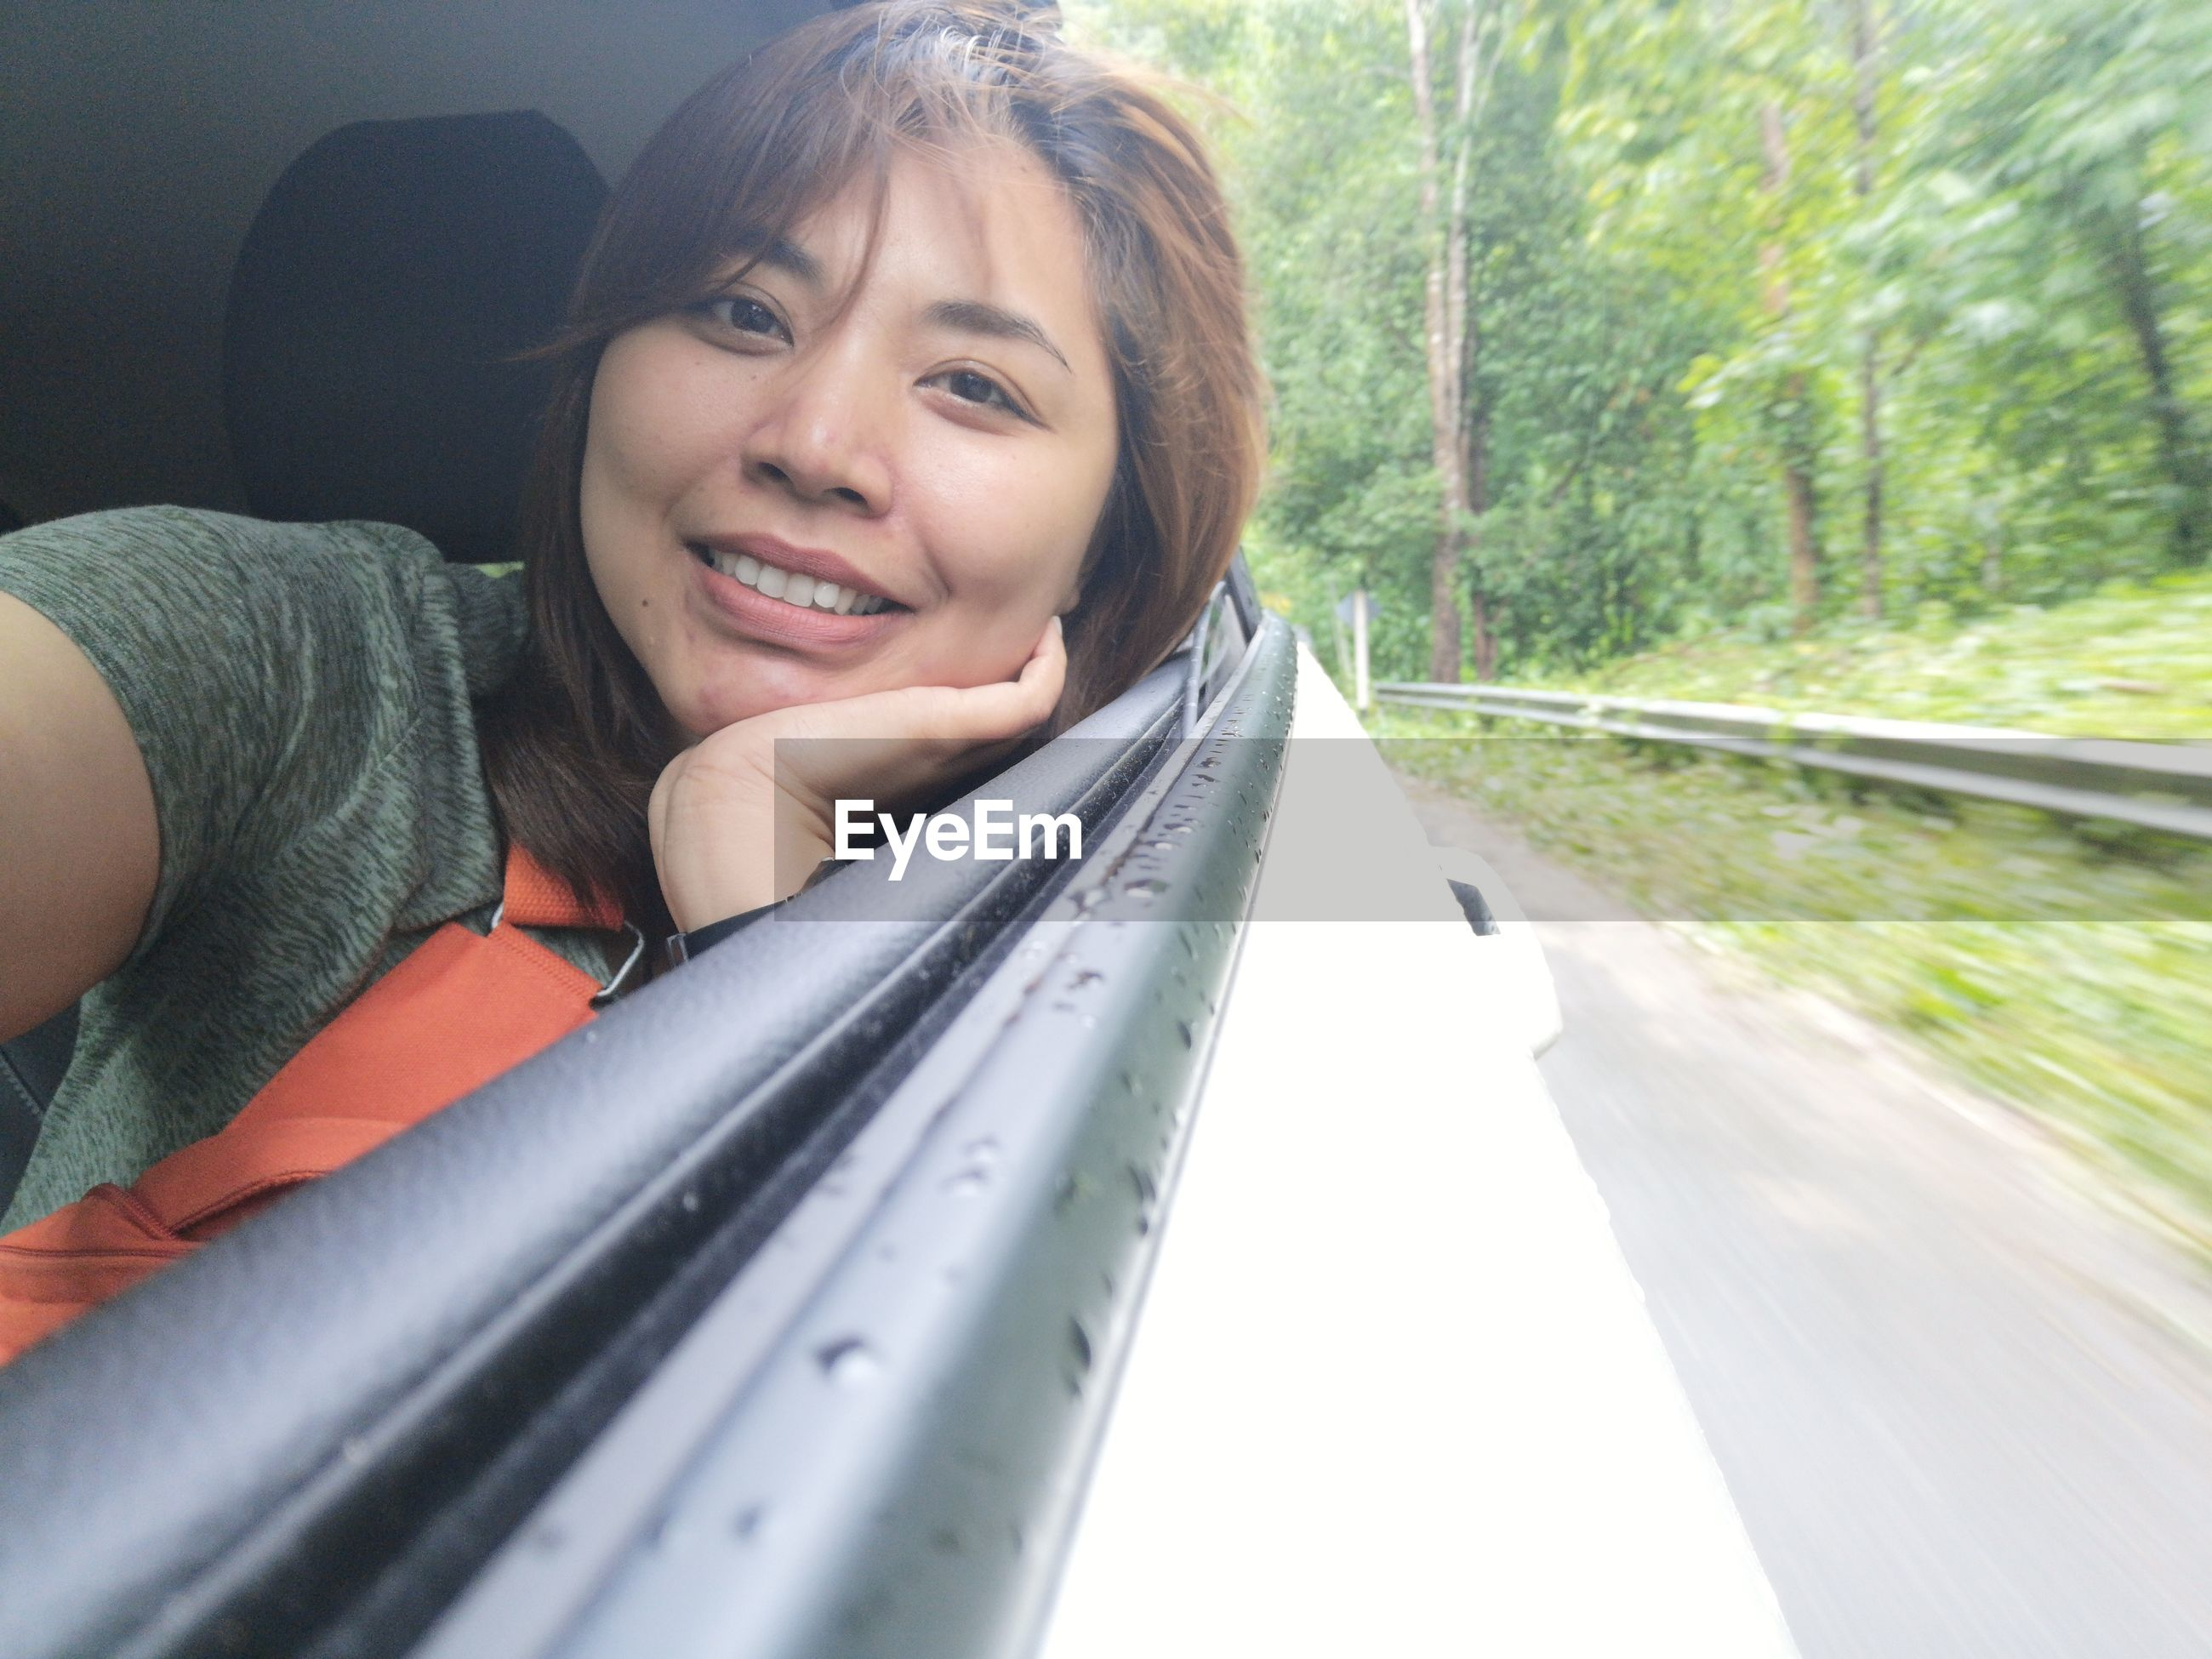 Close-up portrait of smiling woman enjoying road trip in car